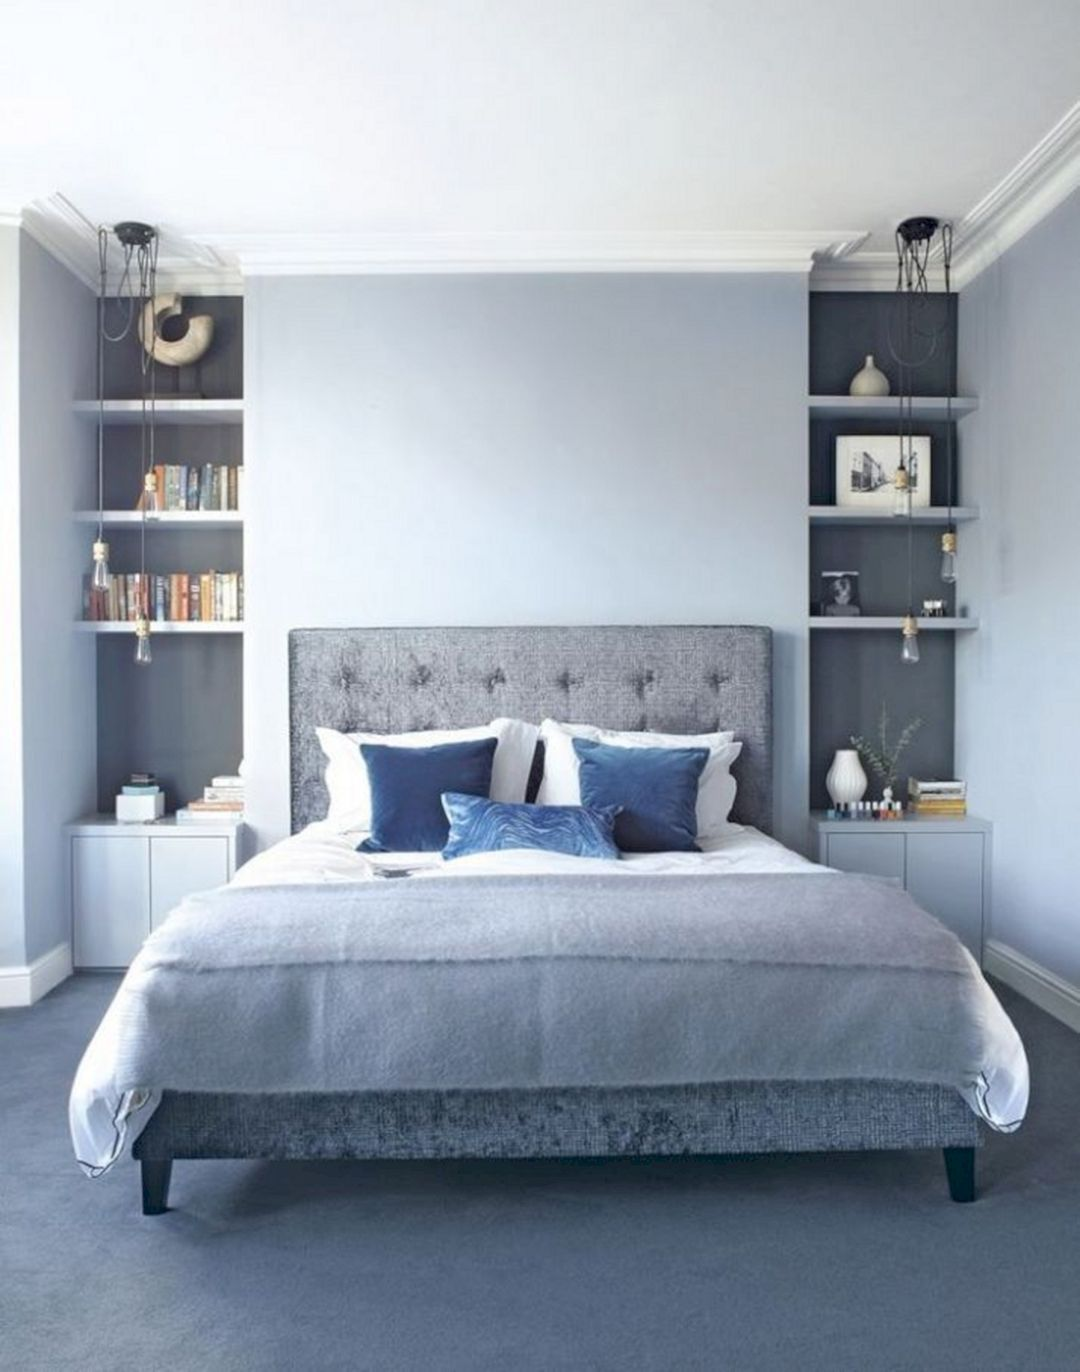 Outstanding 12+ Bedroom Paint Colors Ideas That Soothing